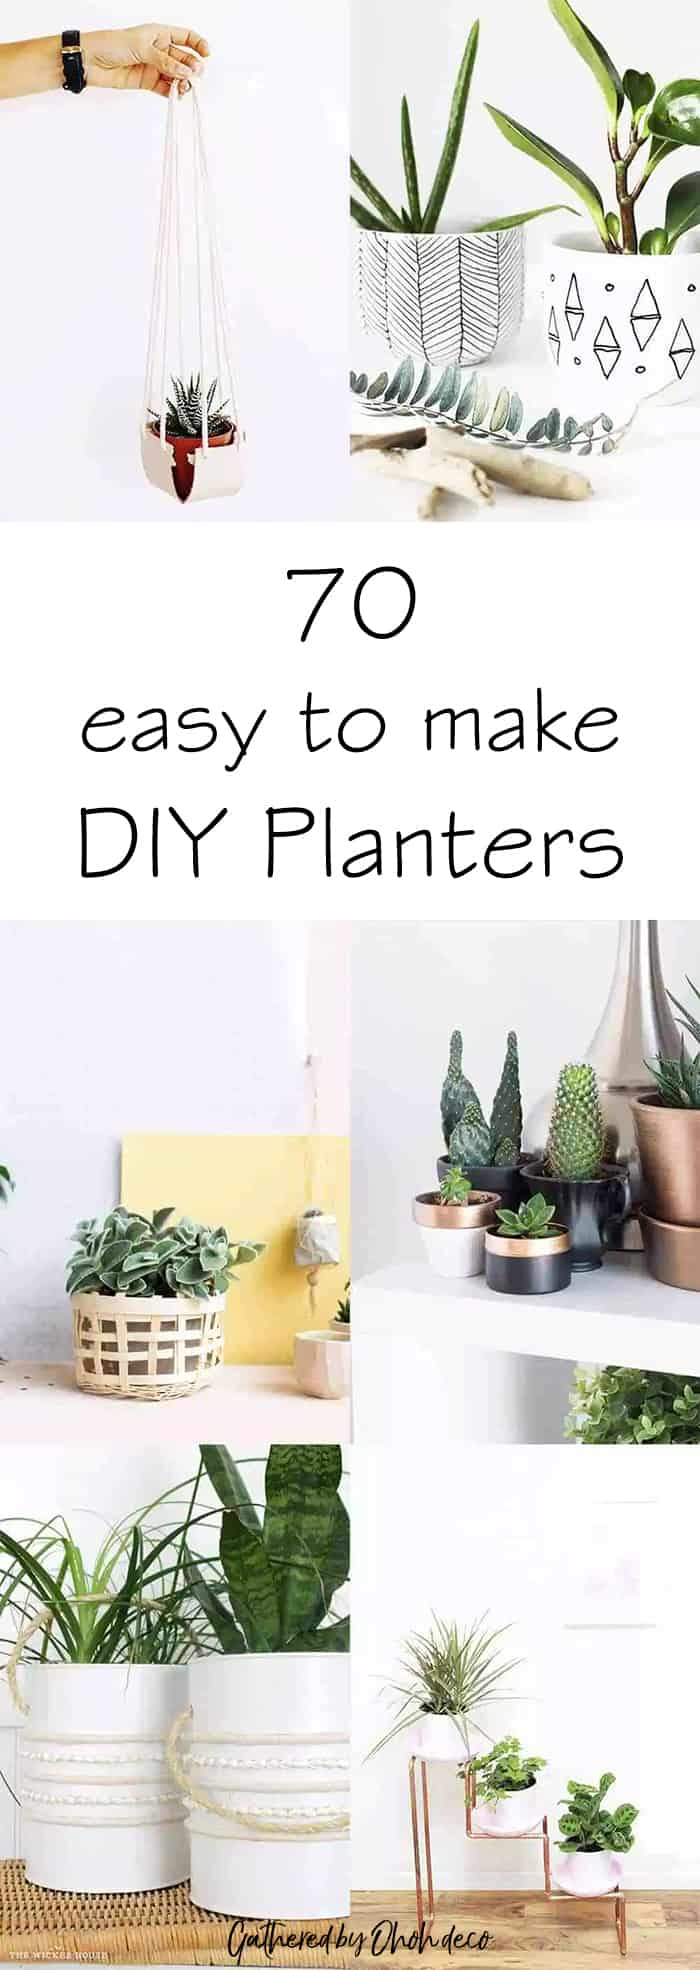 70 DIY planters easy to make